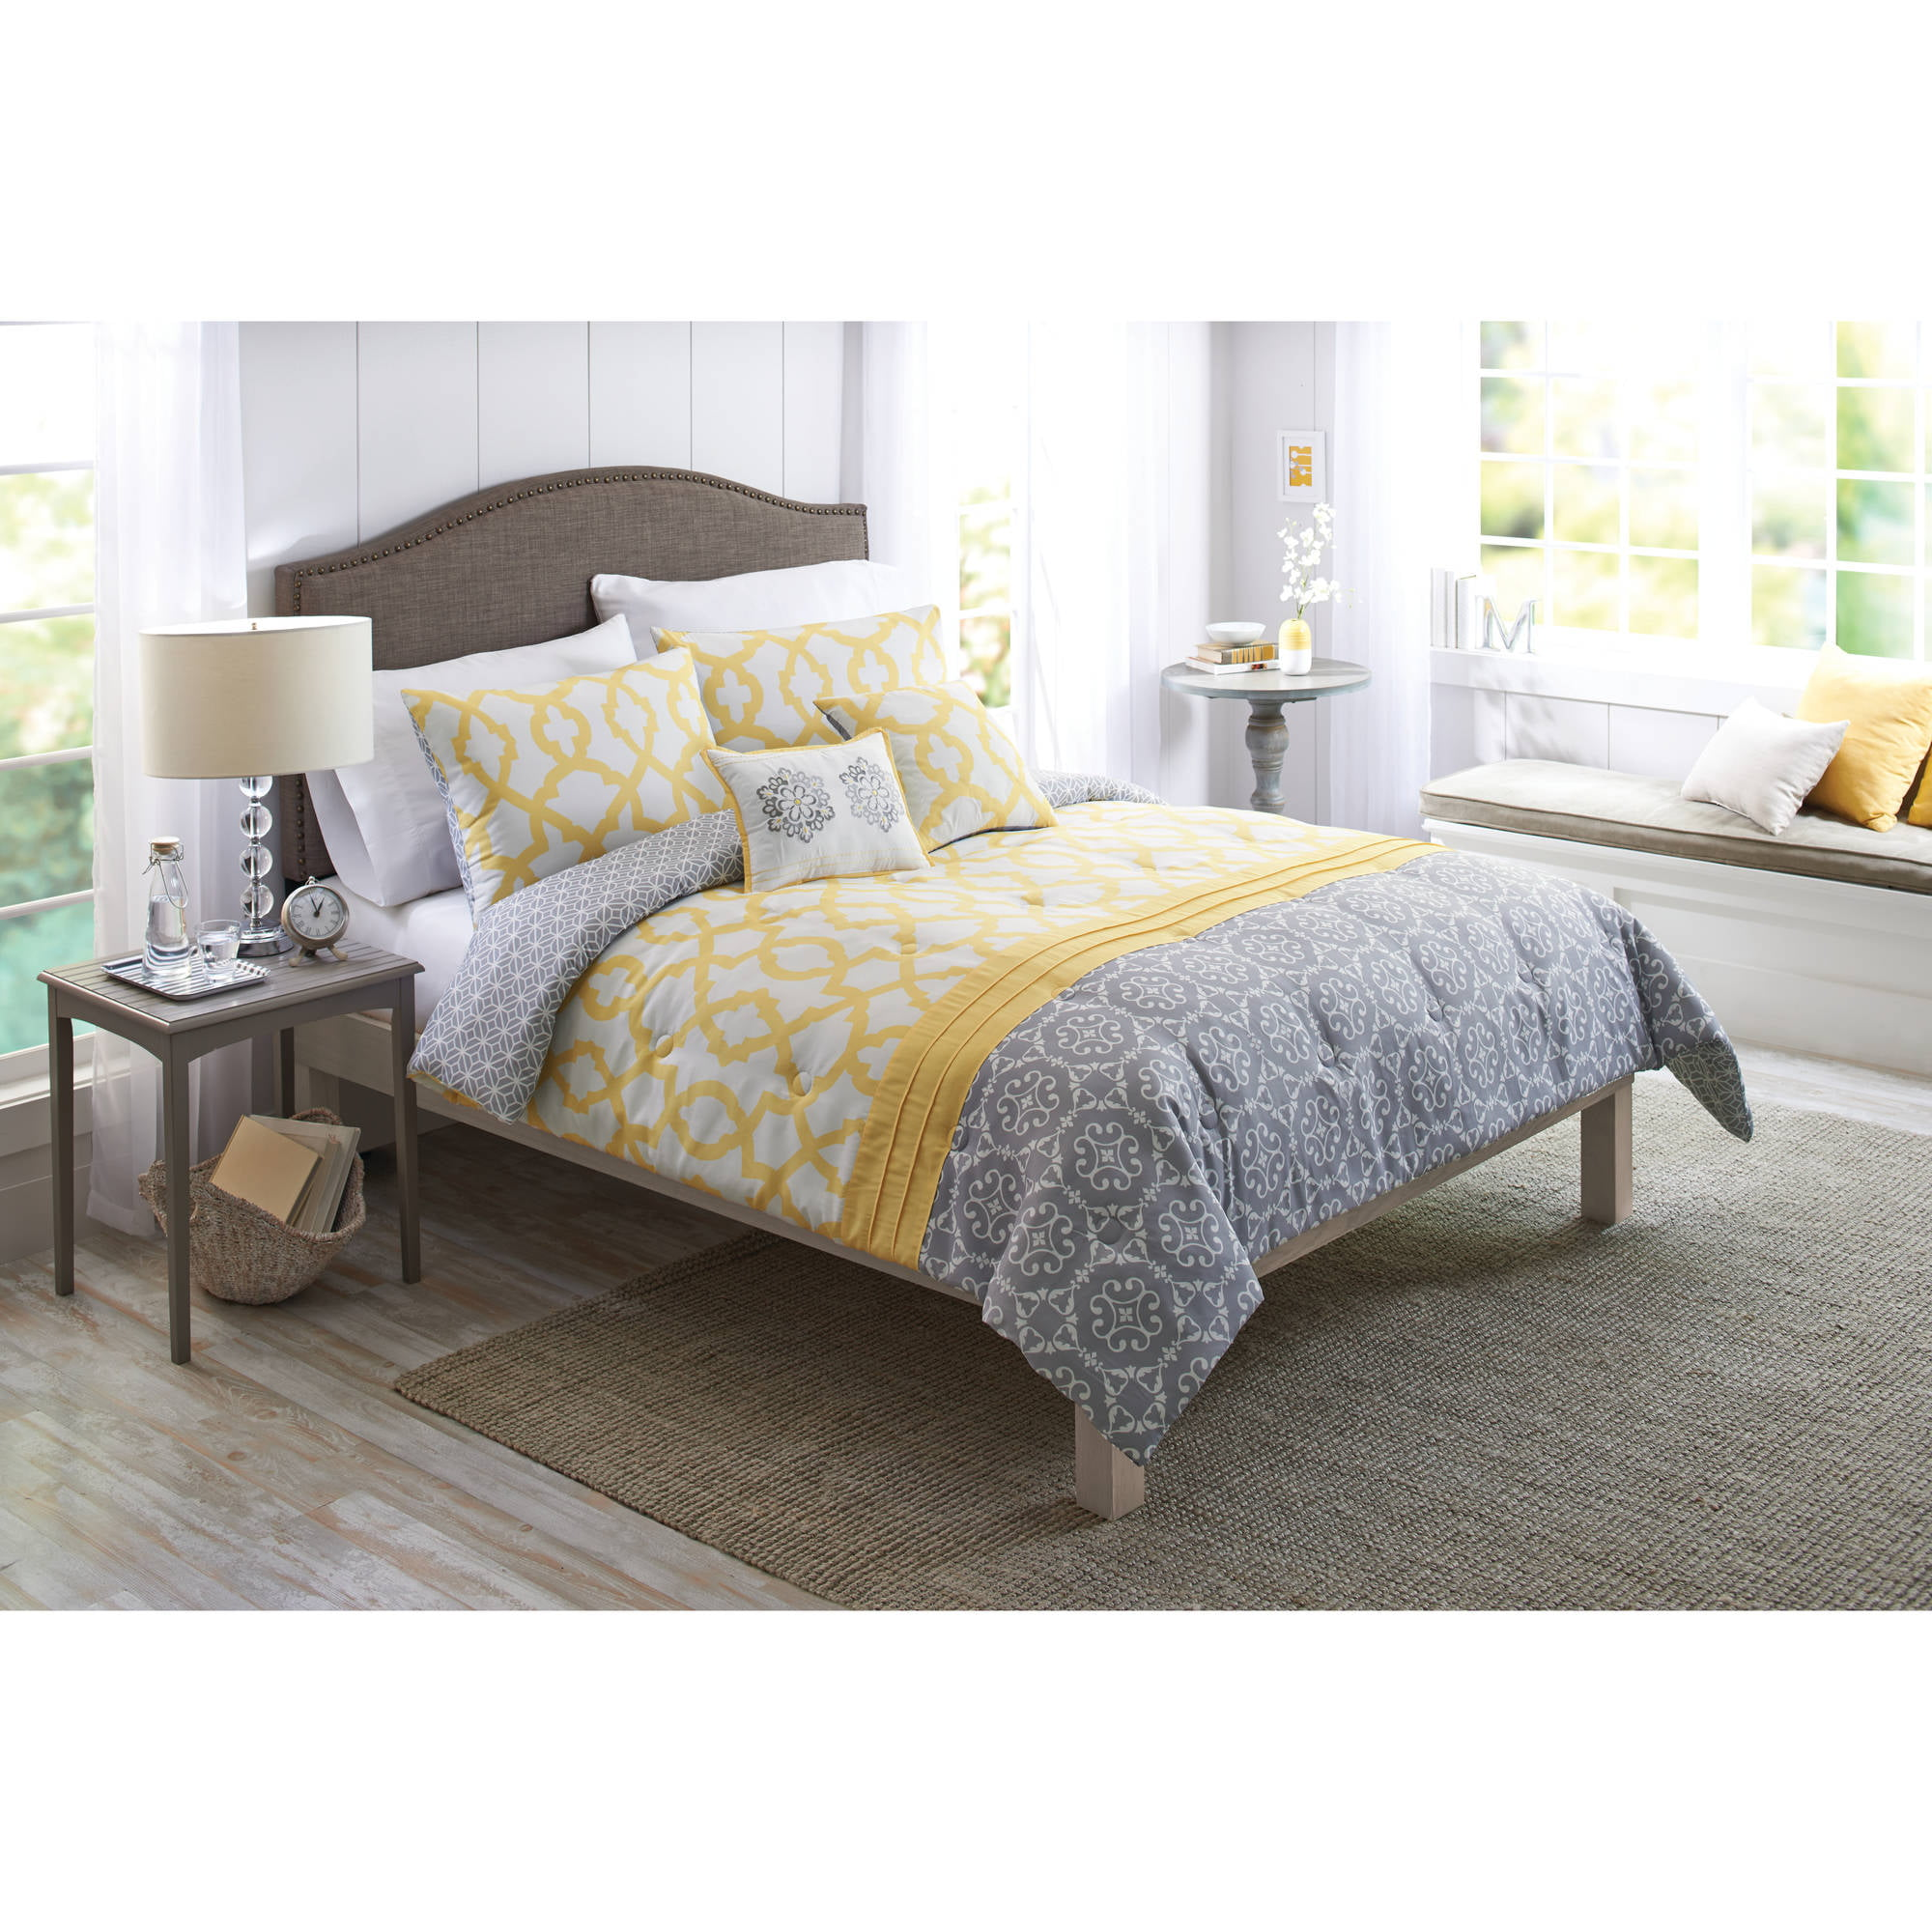 Better Homes U0026 Gardens Yellow And Gray Medallion 5 Piece Bedding Comforter  Set   Walmart.com